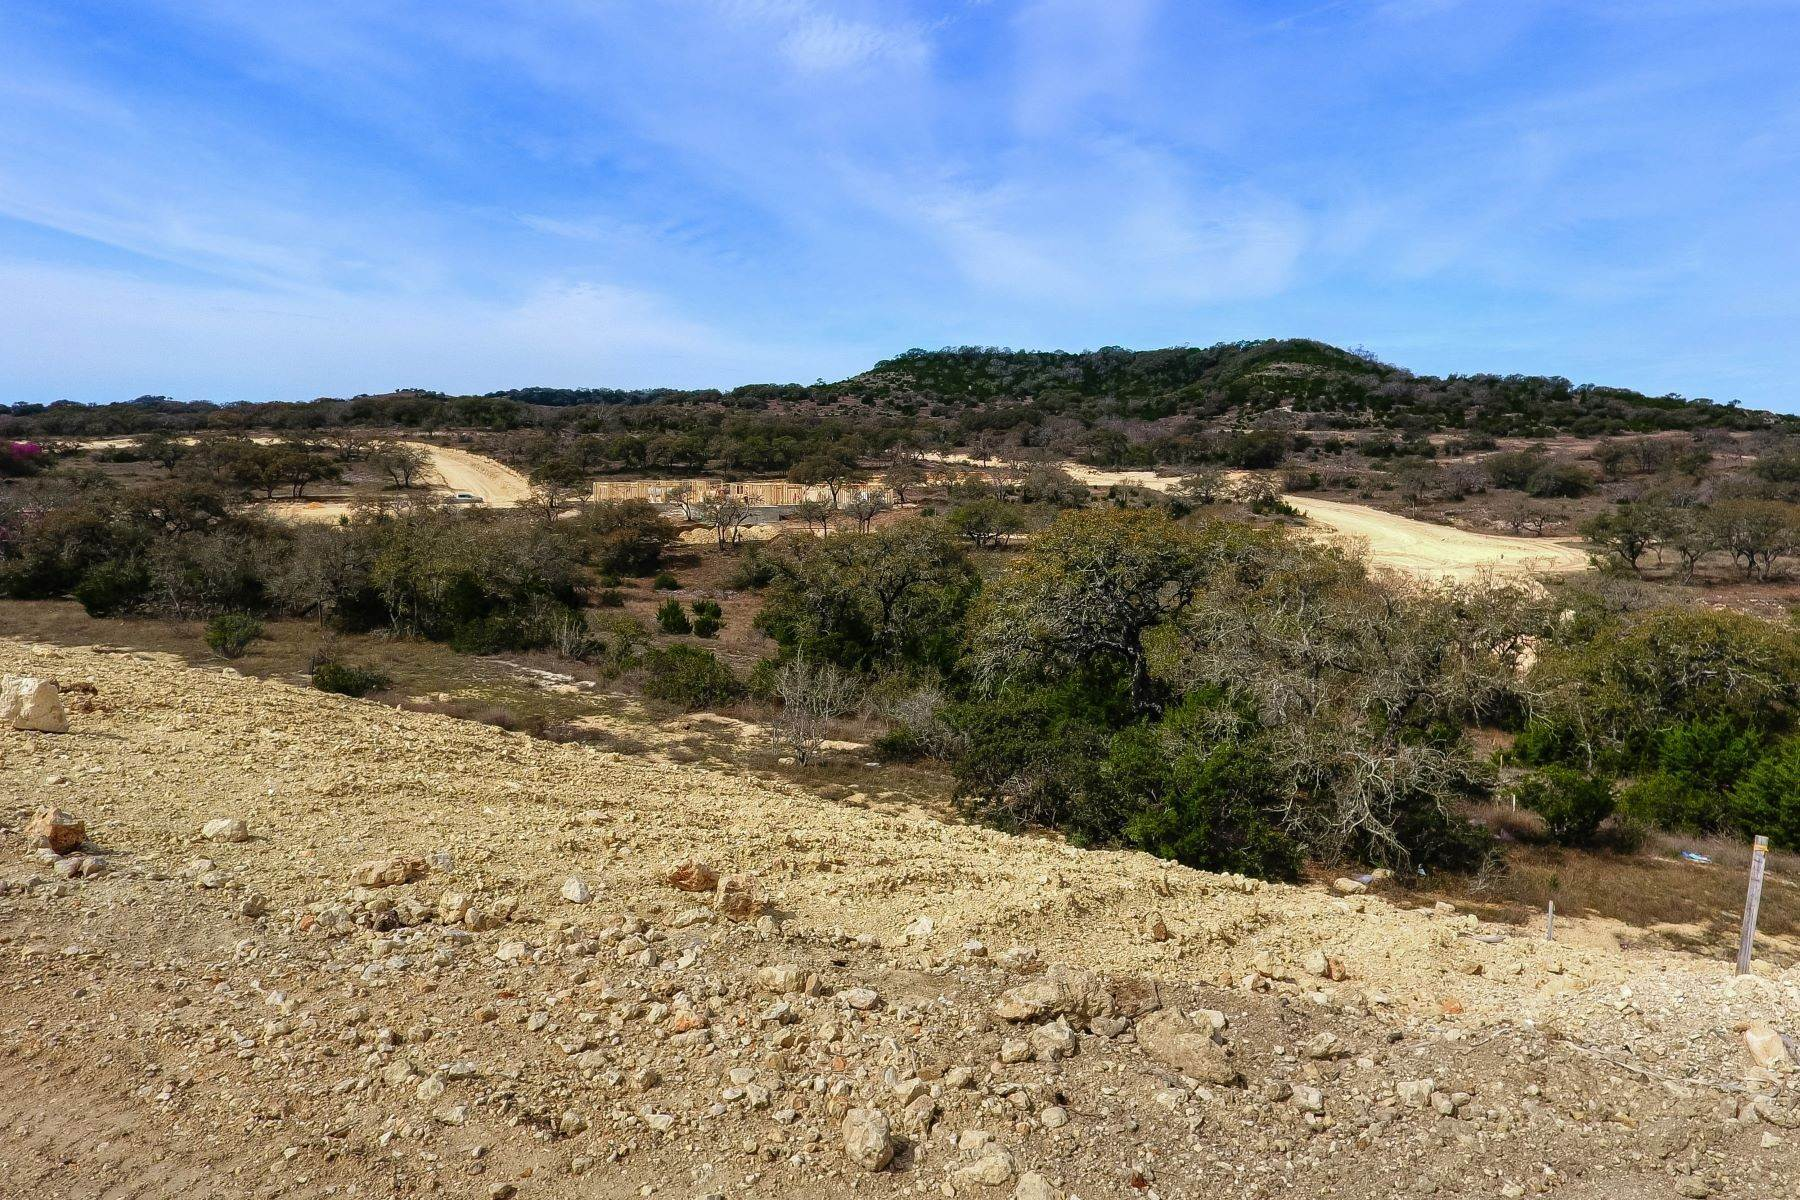 Land for Sale at Wonderful View in Desirable Canyons 23119 Casey Cyn San Antonio, Texas 78255 United States